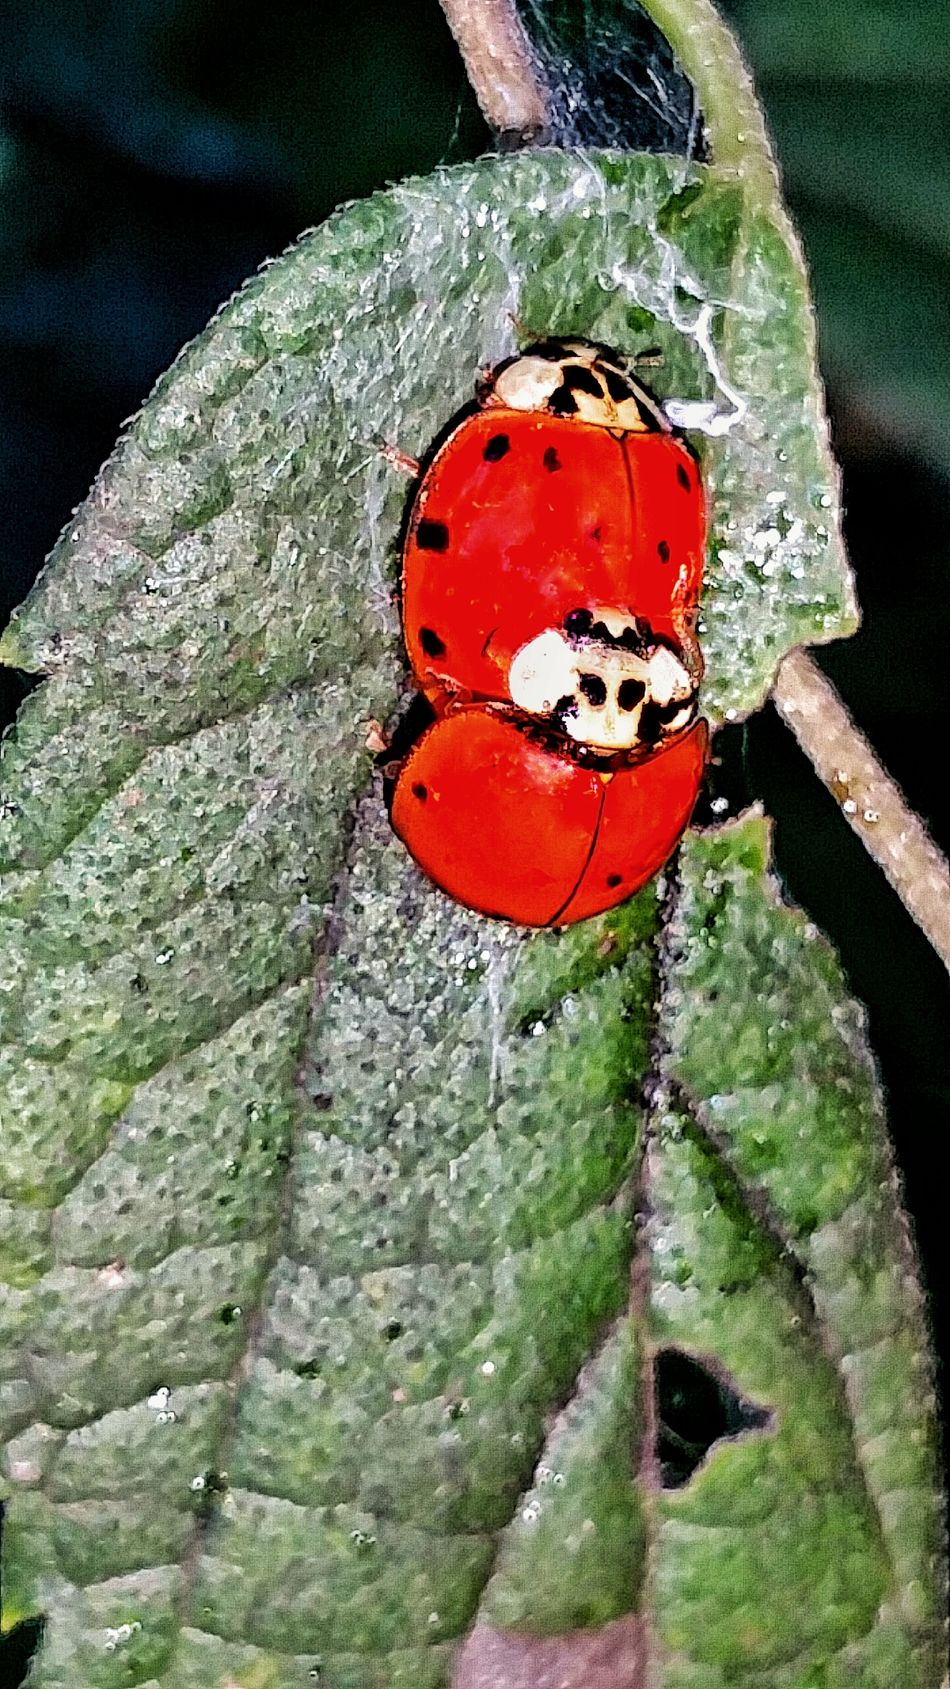 Lady Bugs Red Making Babies Mating Pair Love Two Of A Kind Close-up Vibrant Color Insects  Bugs Bugs Life Breeding Natures Diversities Beauty In Nature Diversities Of Nature Love Bugs Bugs In Love Outdoors